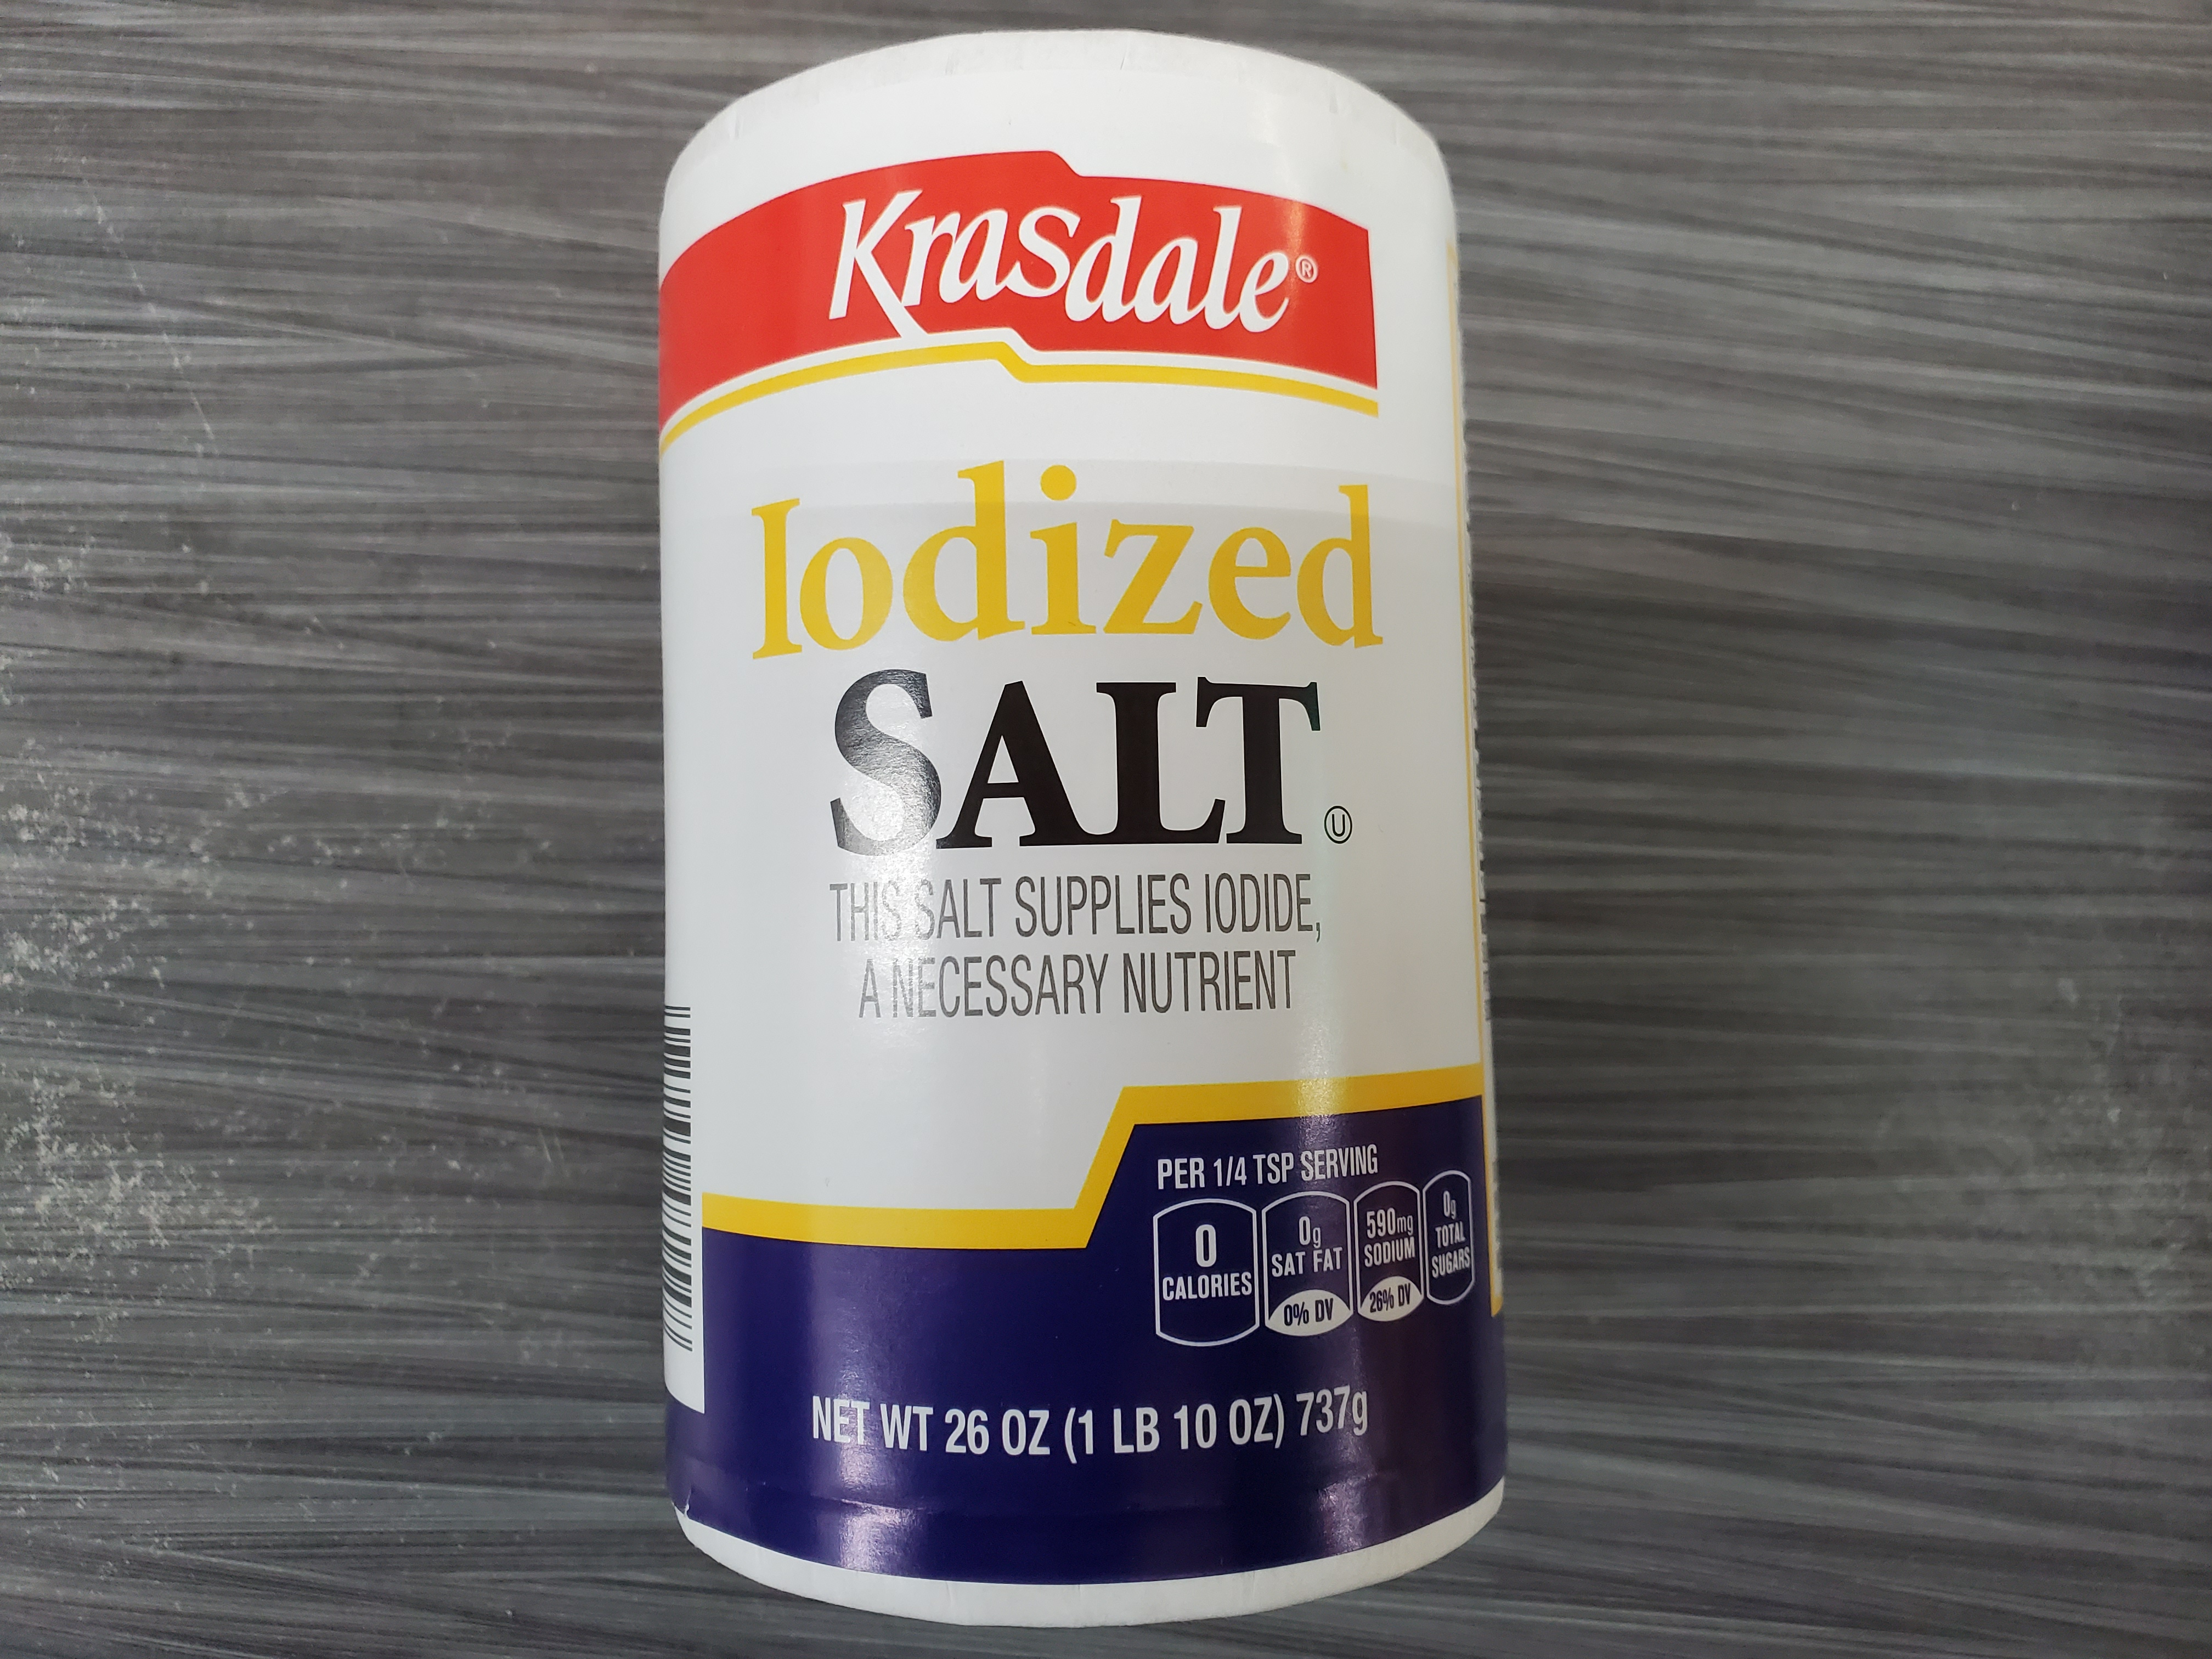 Krasdale Iodized SALT 26 OZ